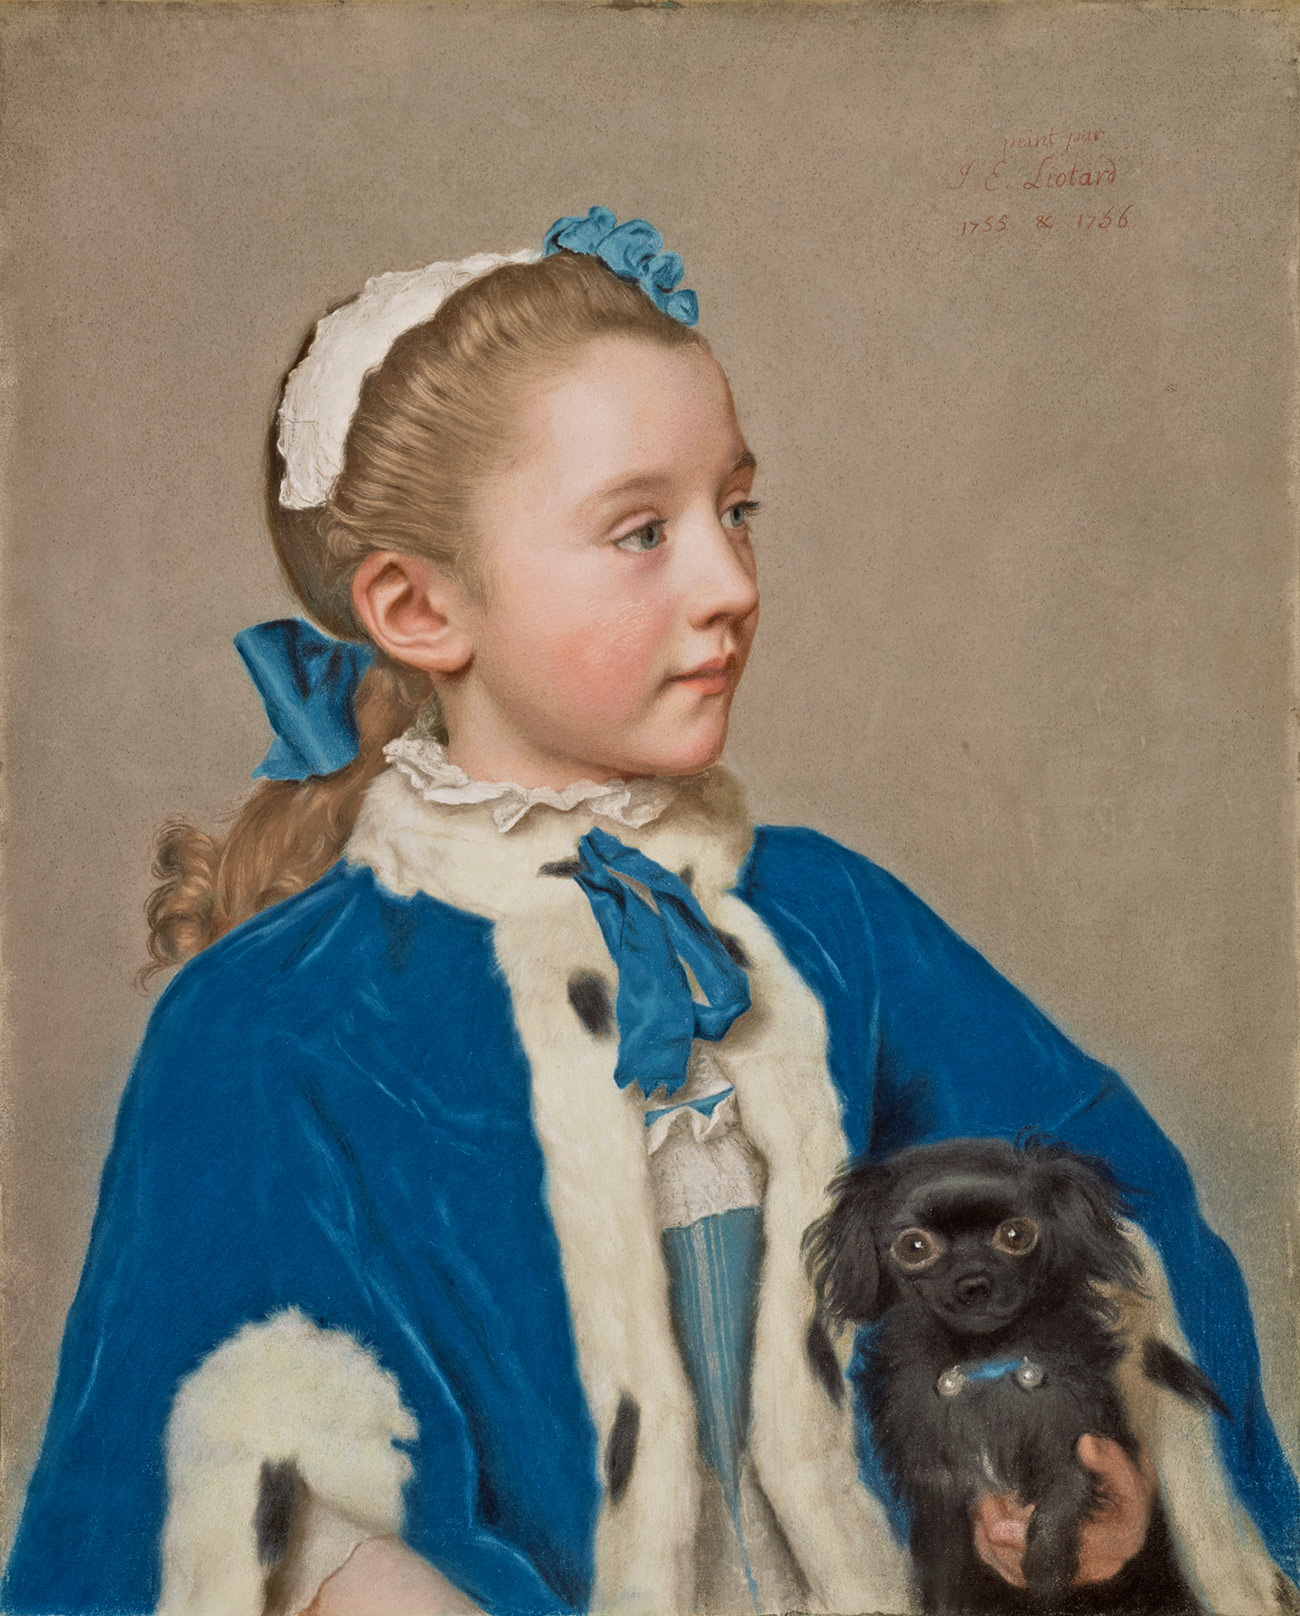 Young girl in a blue cape with white trim, holding a small black dog.